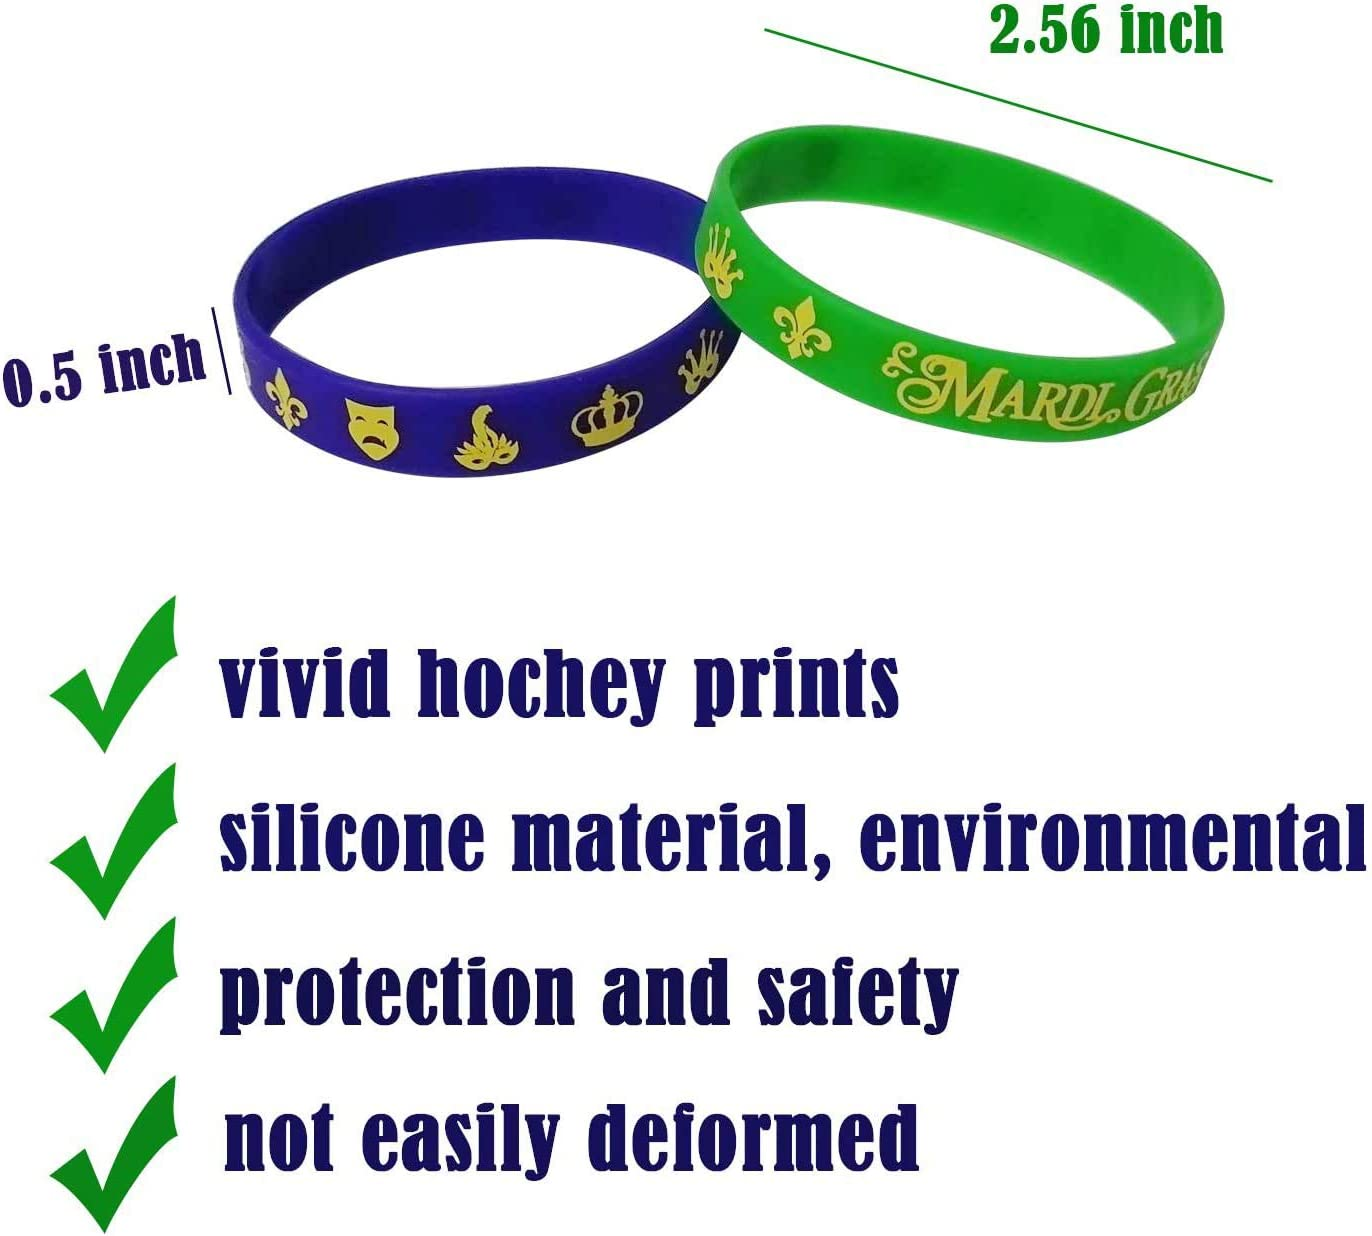 36PCS Mardi Gras Party Favors Rubber Bracelets Carnival Birthday Party Supplies Decorations Goodie Bag Stuffers Fillers Silicone Wristbands